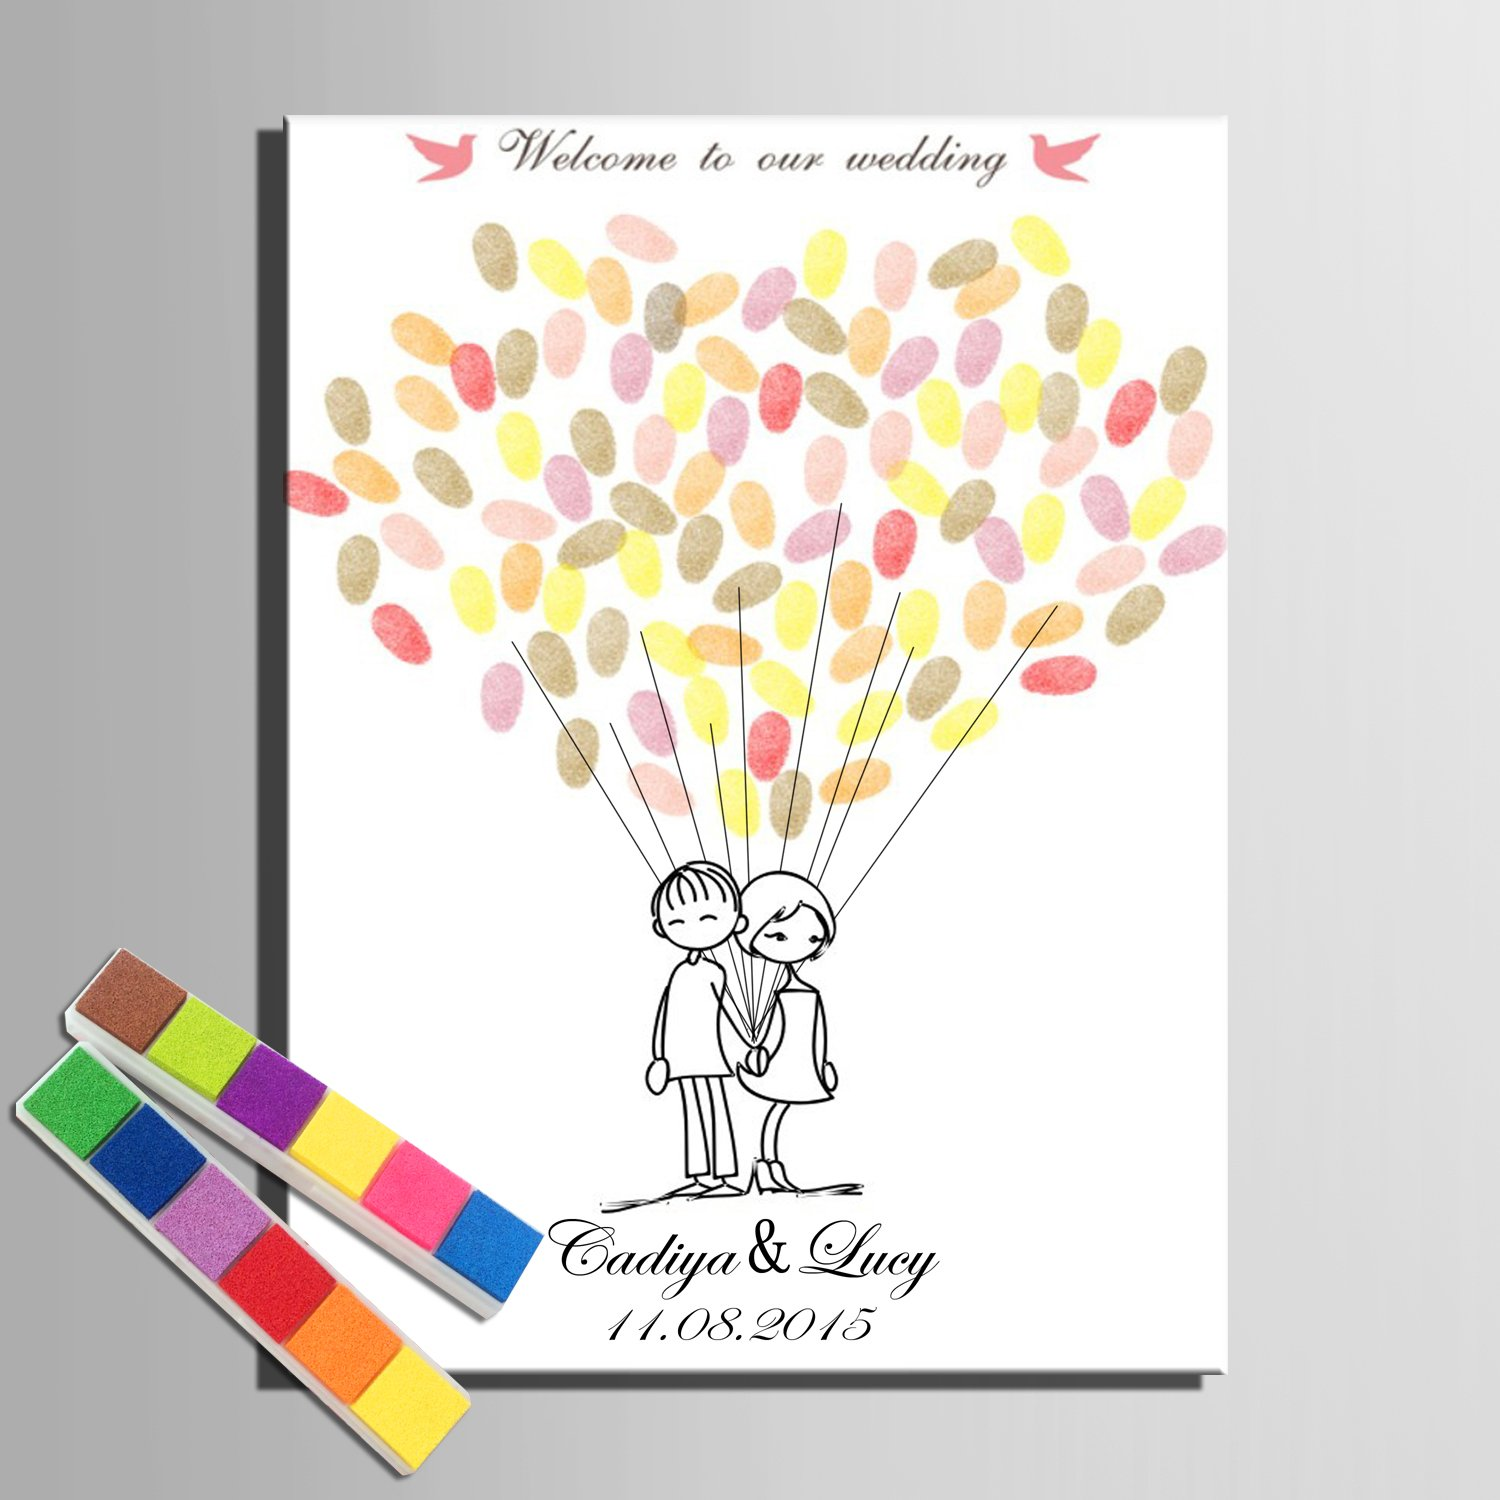 Yiju Fingerprint Signature Canvas Print Boy and Girl Wedding Tree Wedding Gift wedding decoration Party Gift Wedding name (Included 12 Ink Colors) (59x80cm no framed)